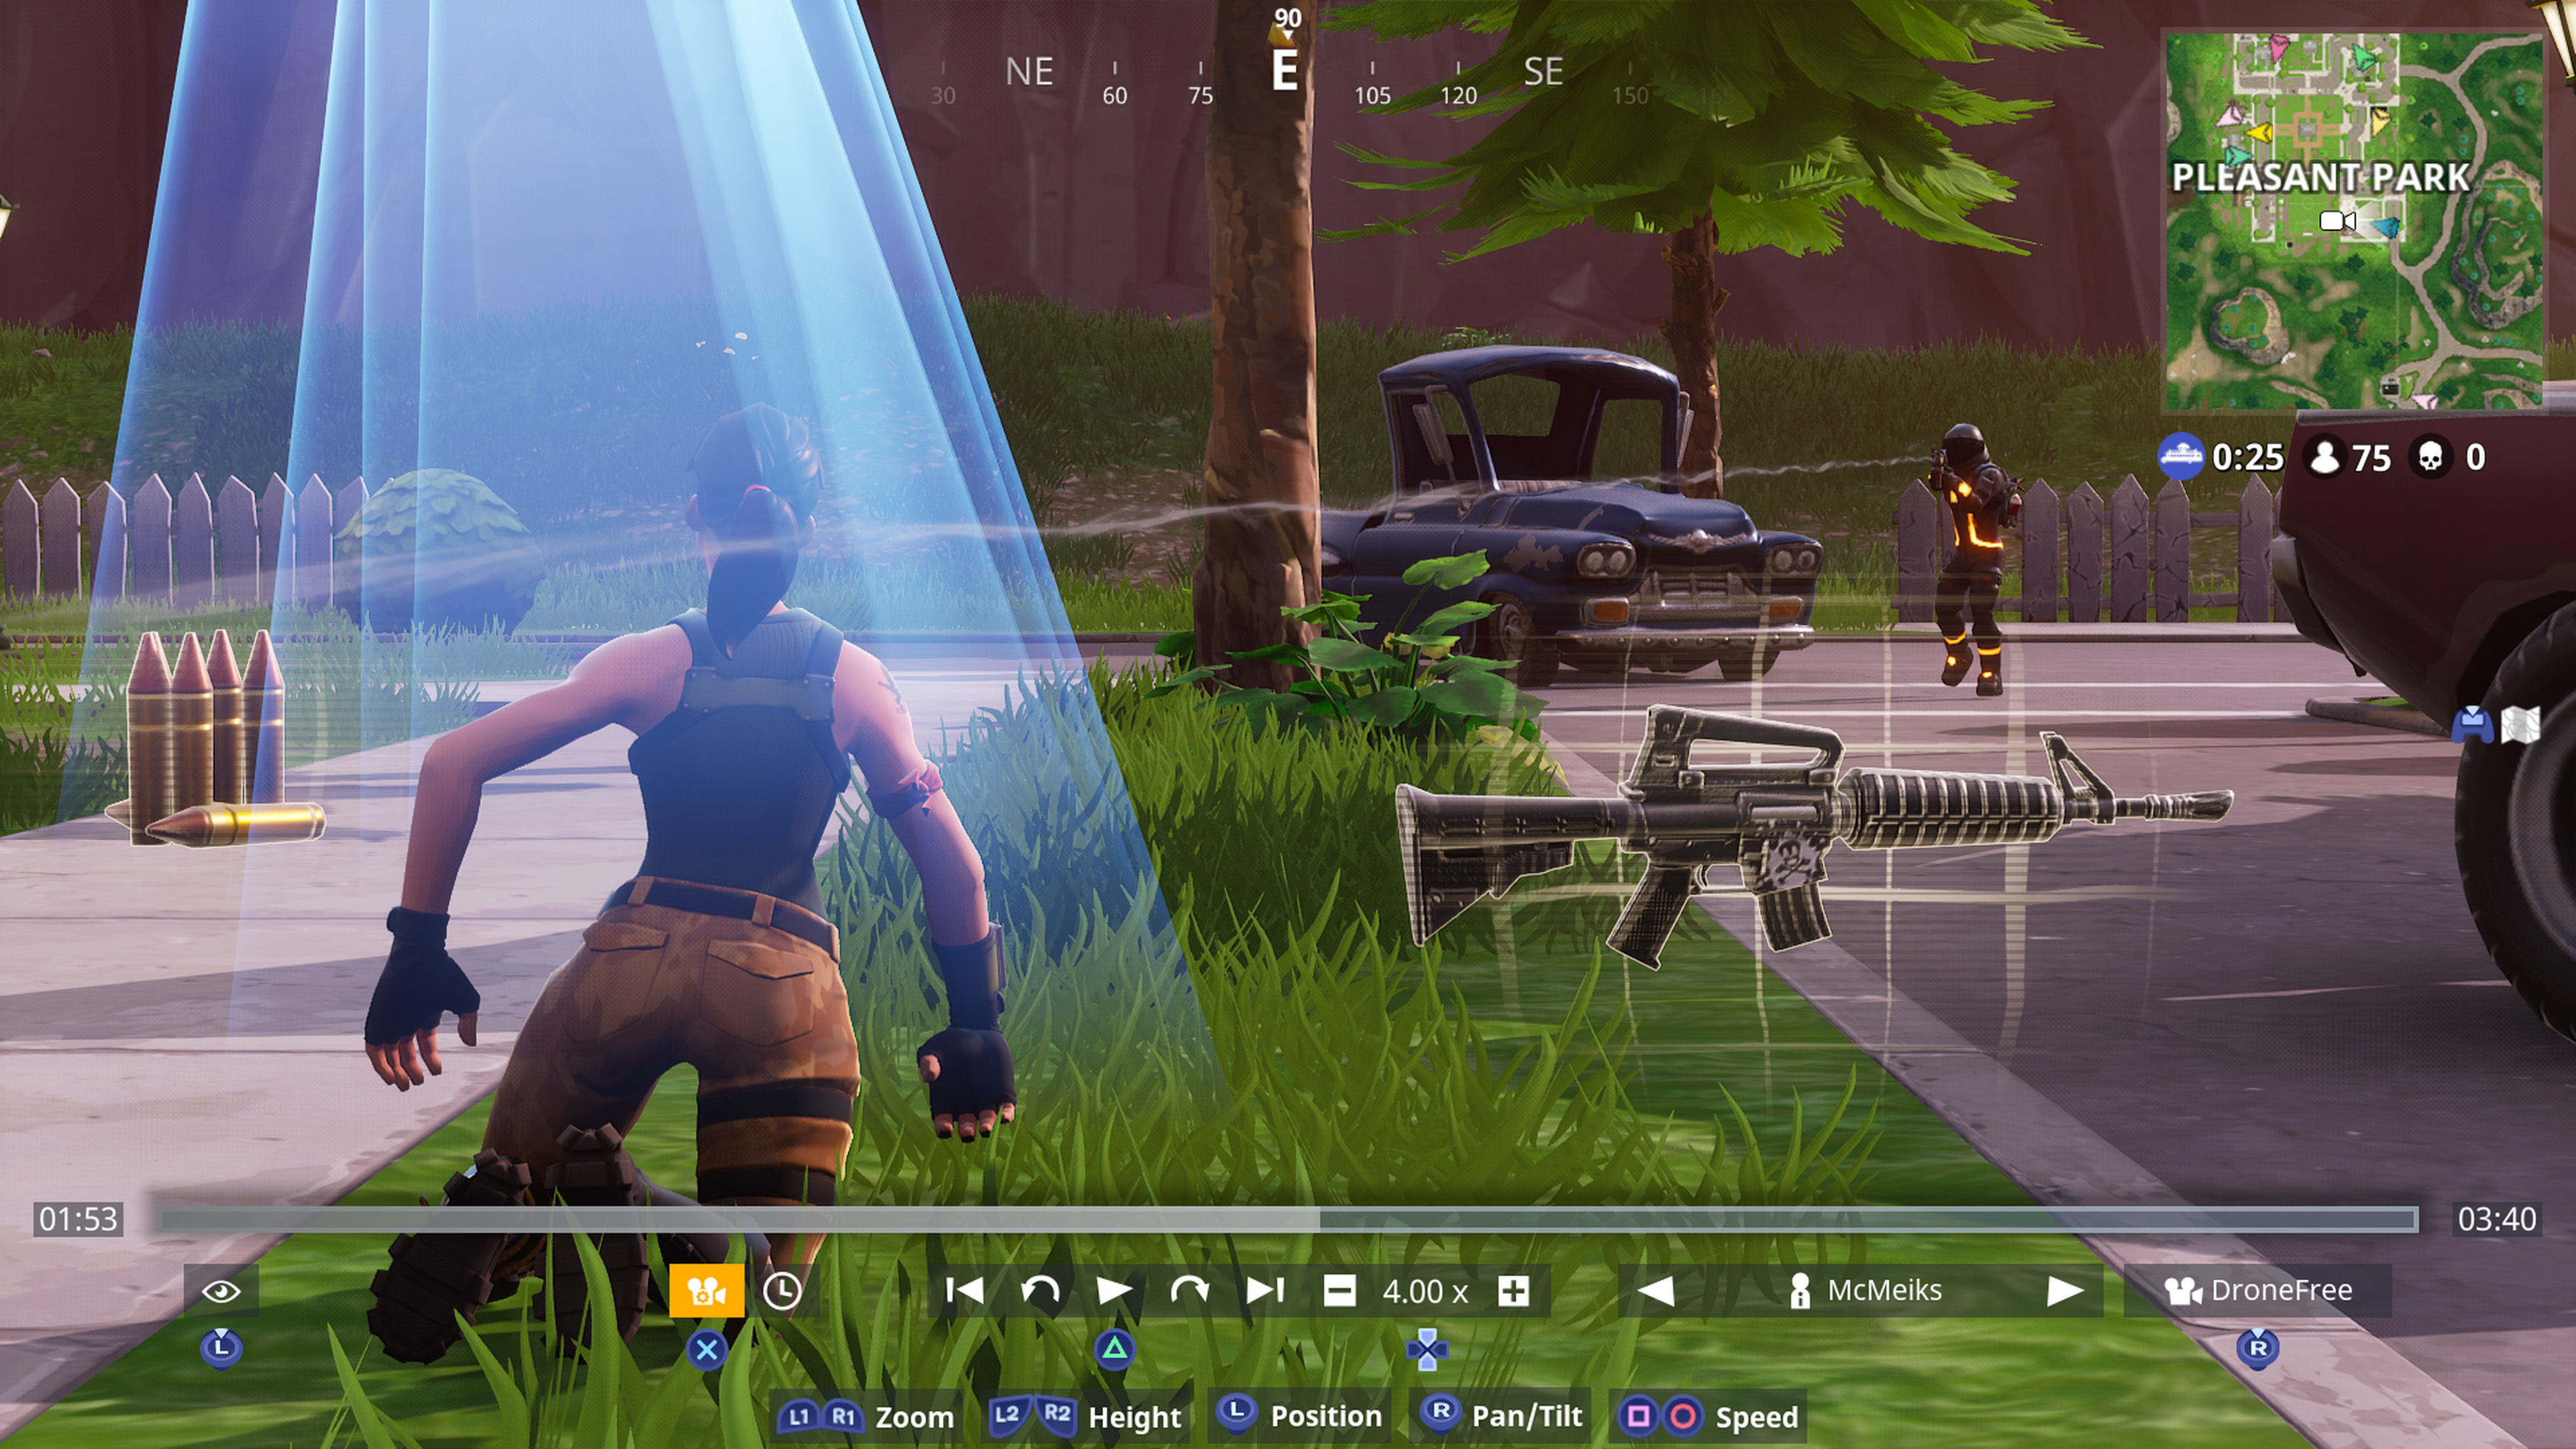 Pubg Pc Update 8 To Introduce Weapon Skin System New: Fortnite Replay System Guide: Tips To Watch Those